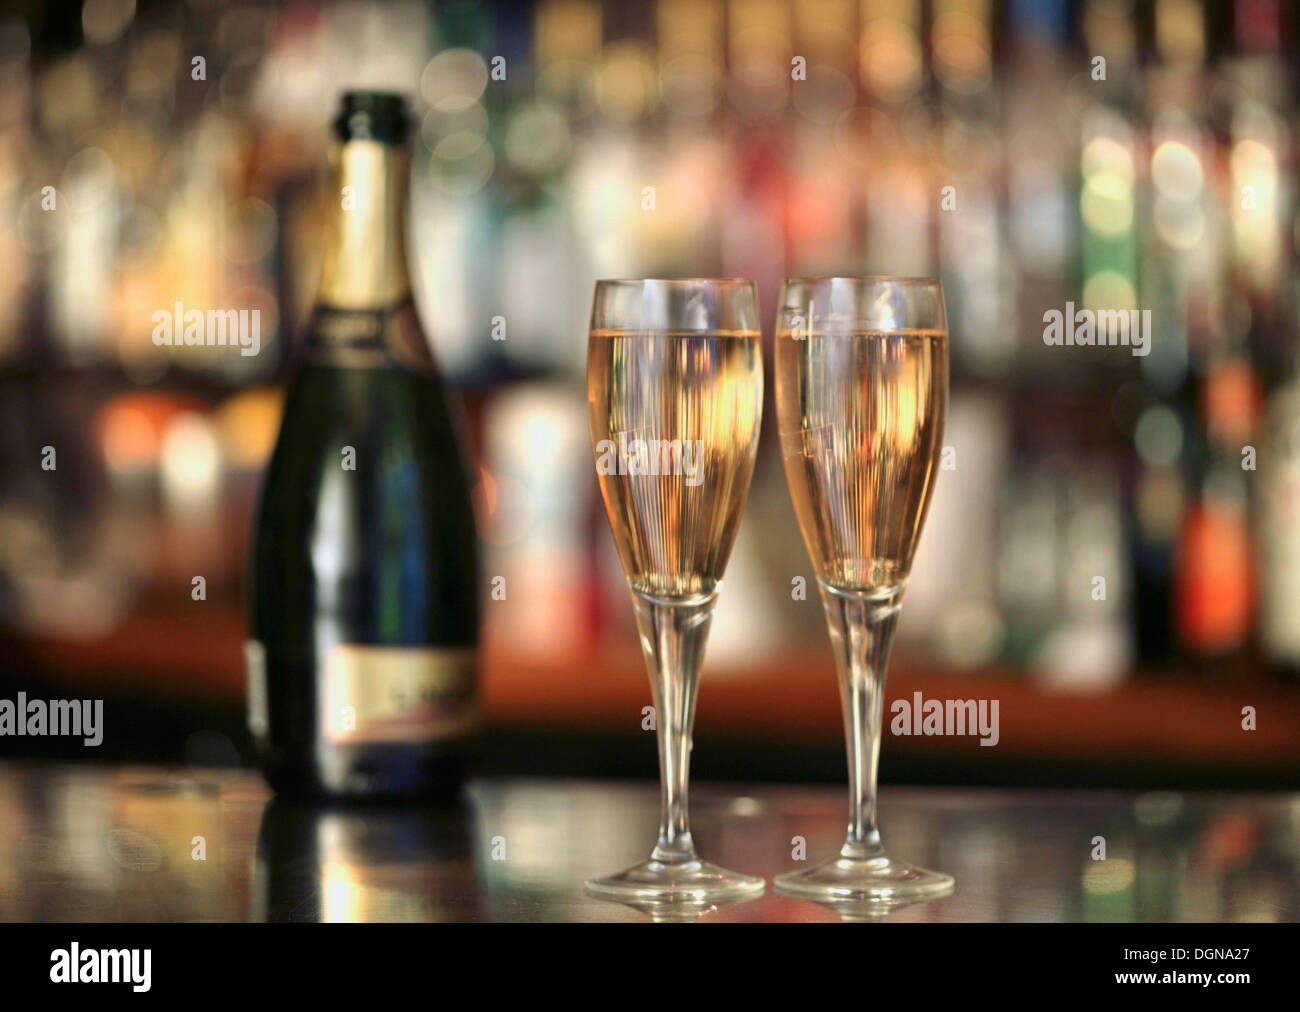 A champagne bottle and two glasses of champagne on a bar - Stock Image